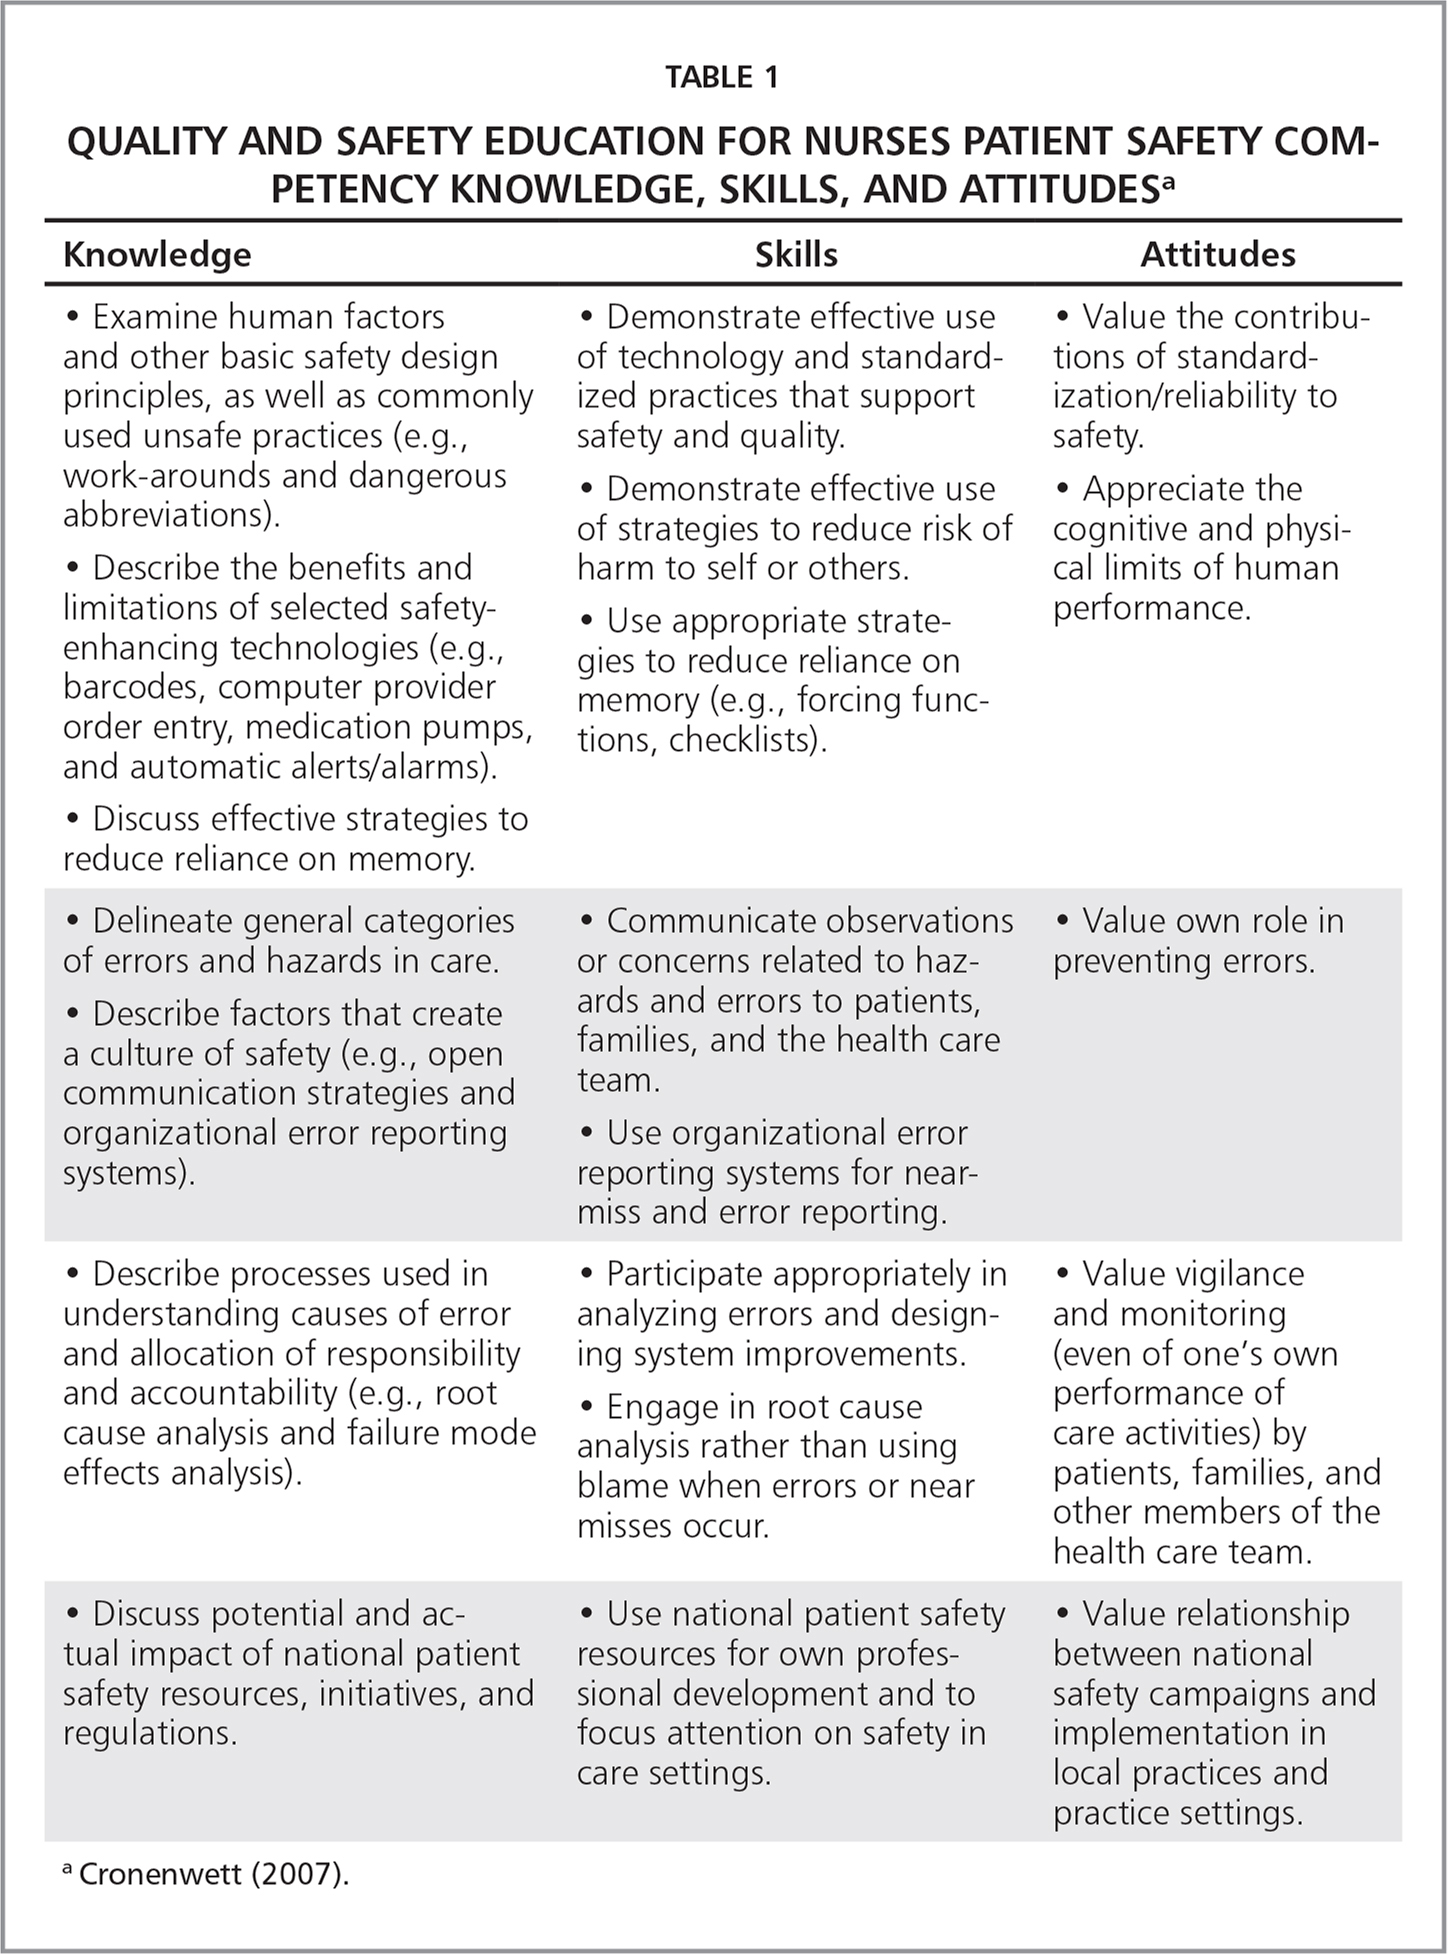 Quality and Safety Education for Nurses Patient Safety Competency Knowledge, Skills, and Attitudesa